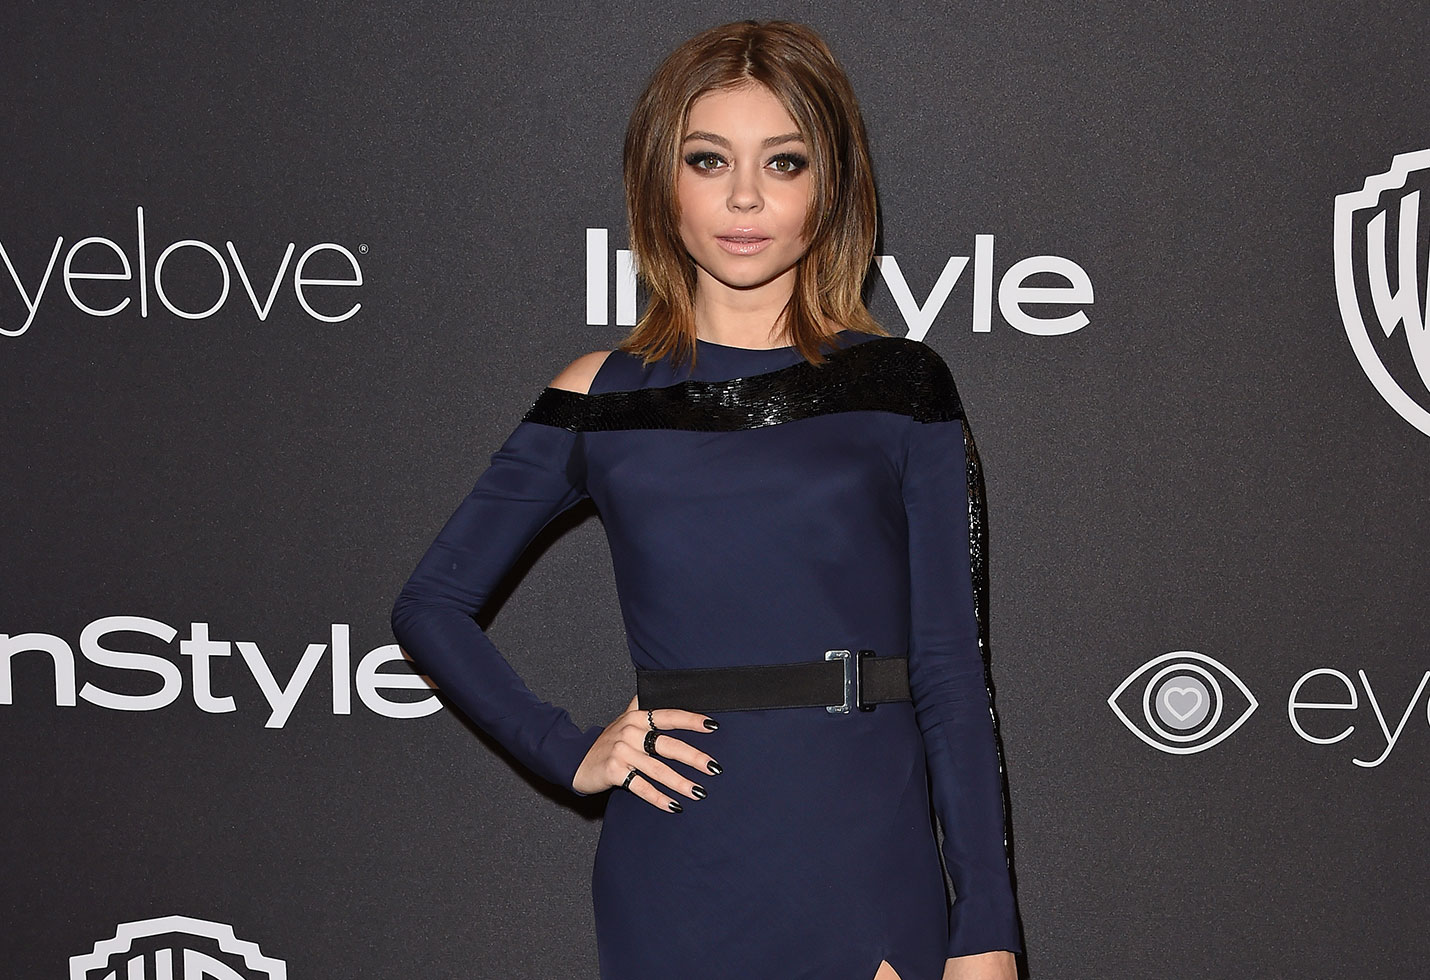 Sarah hyland reveals modern family character bisexual feature